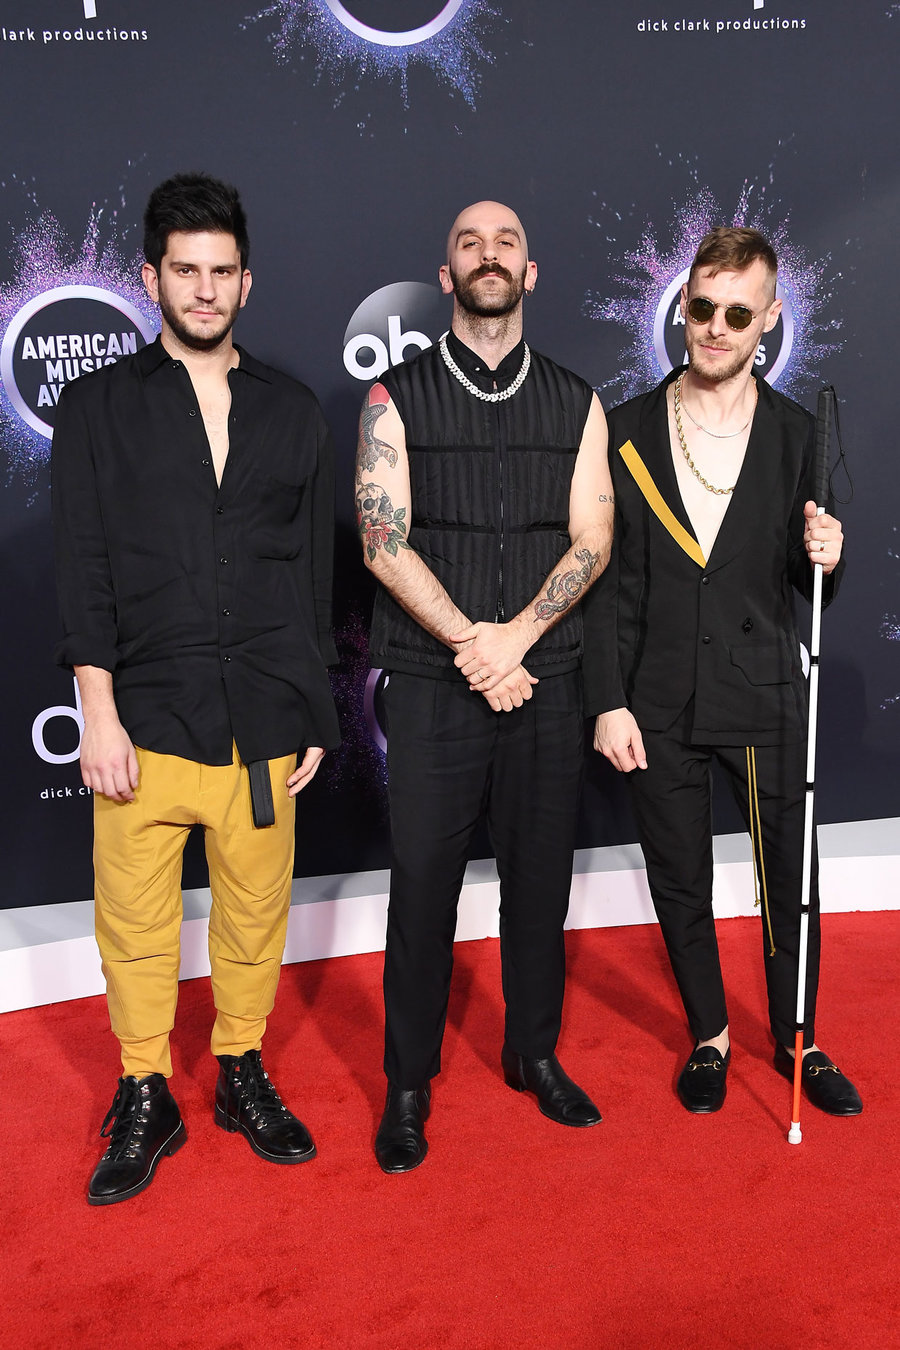 X Ambassadors 2019AmericanMusicAwards - American Music Awards 2019: Фотографии с красной дорожки